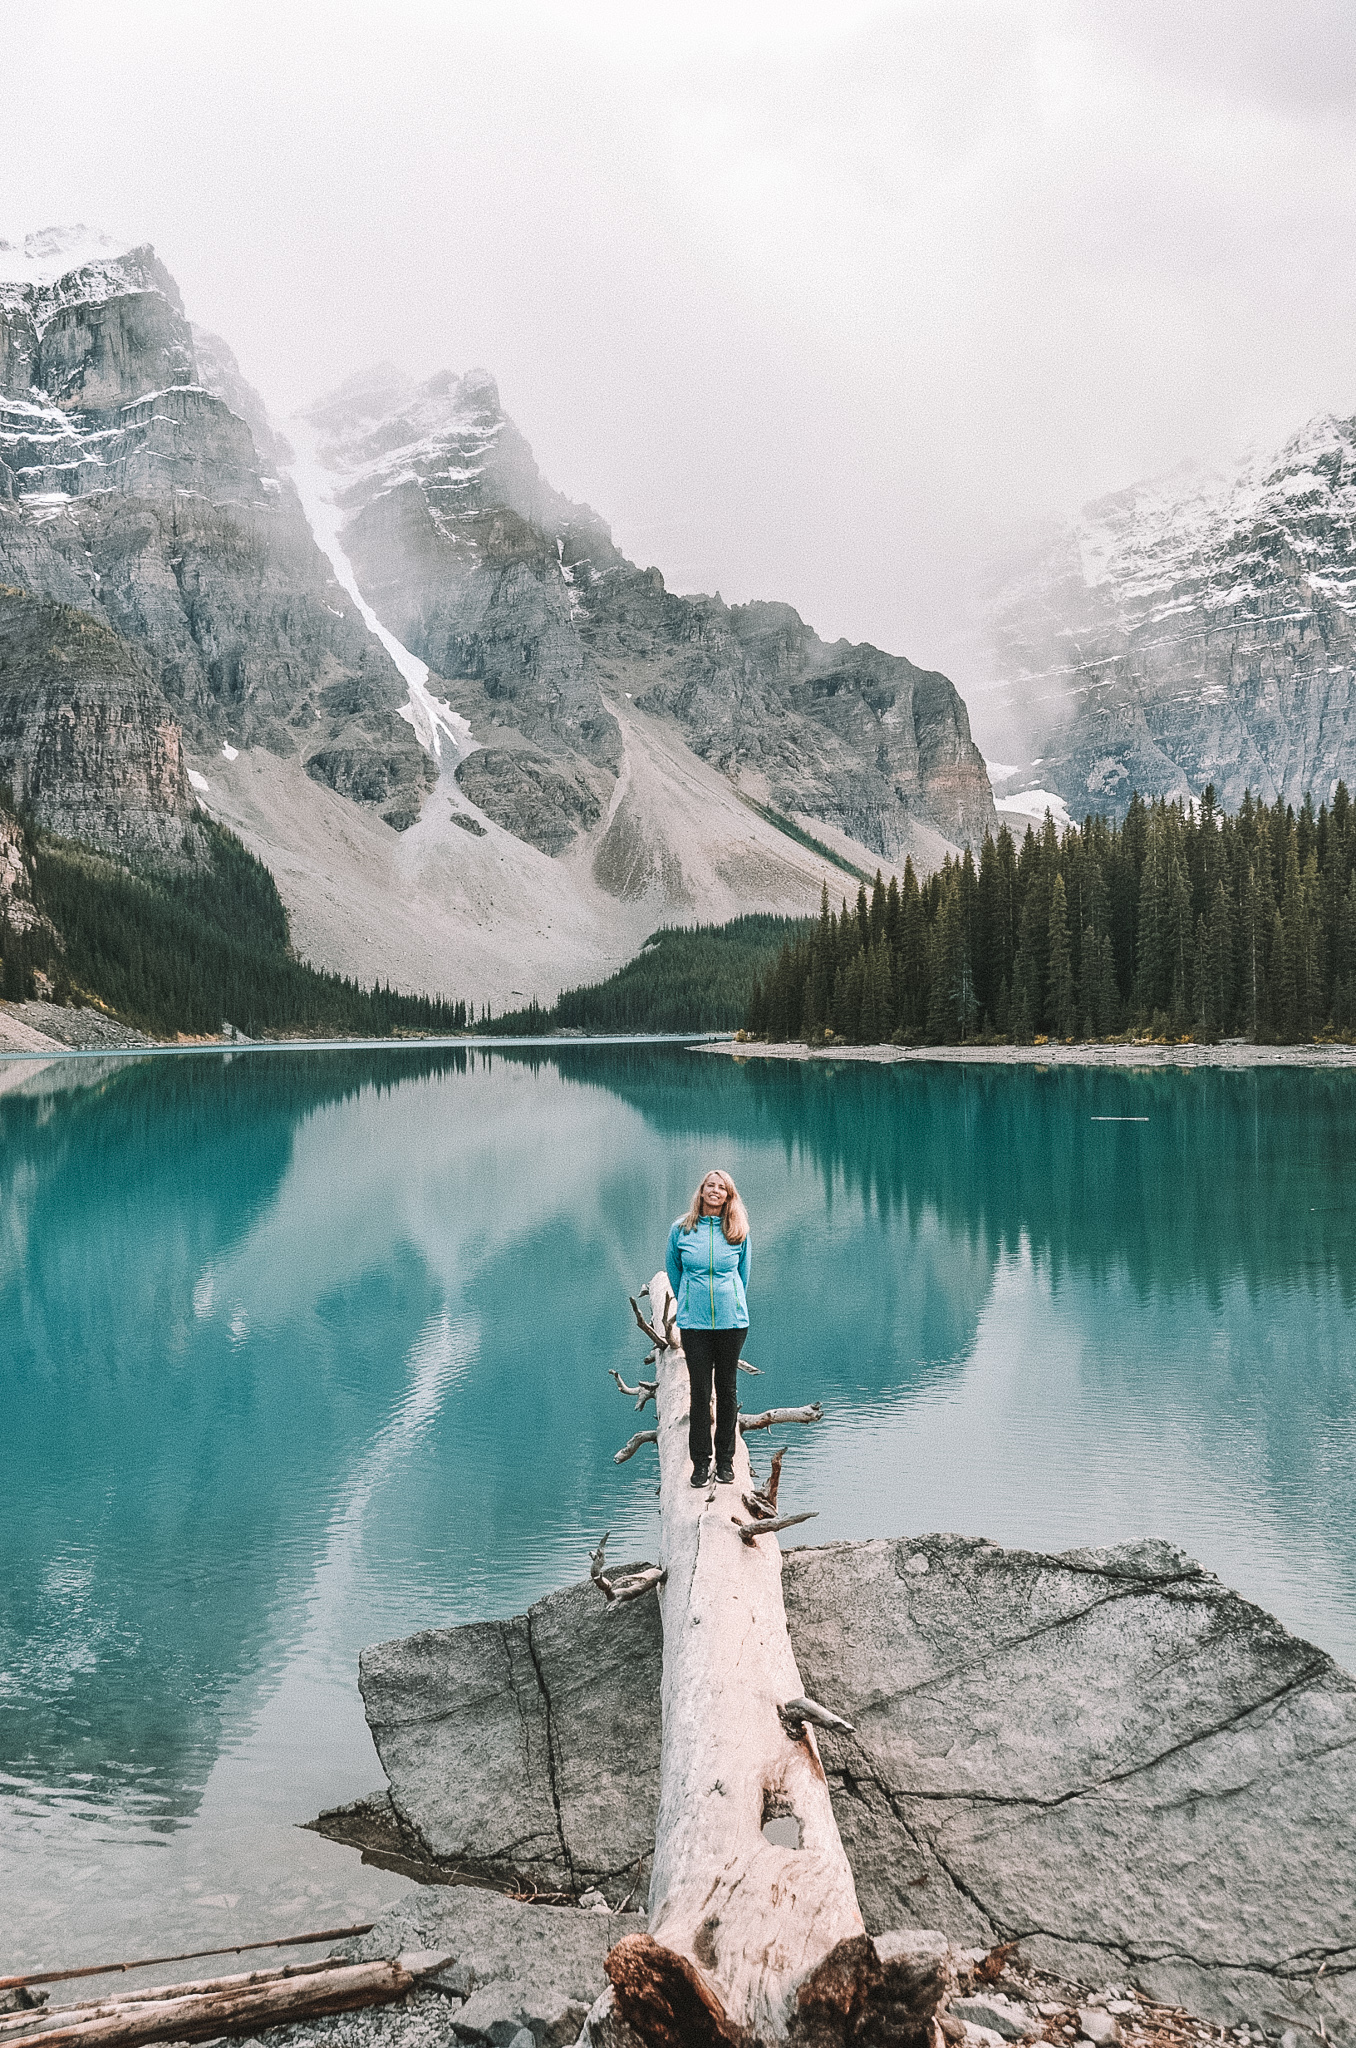 woman in blue jacket on log at moraine lake banff national park canada